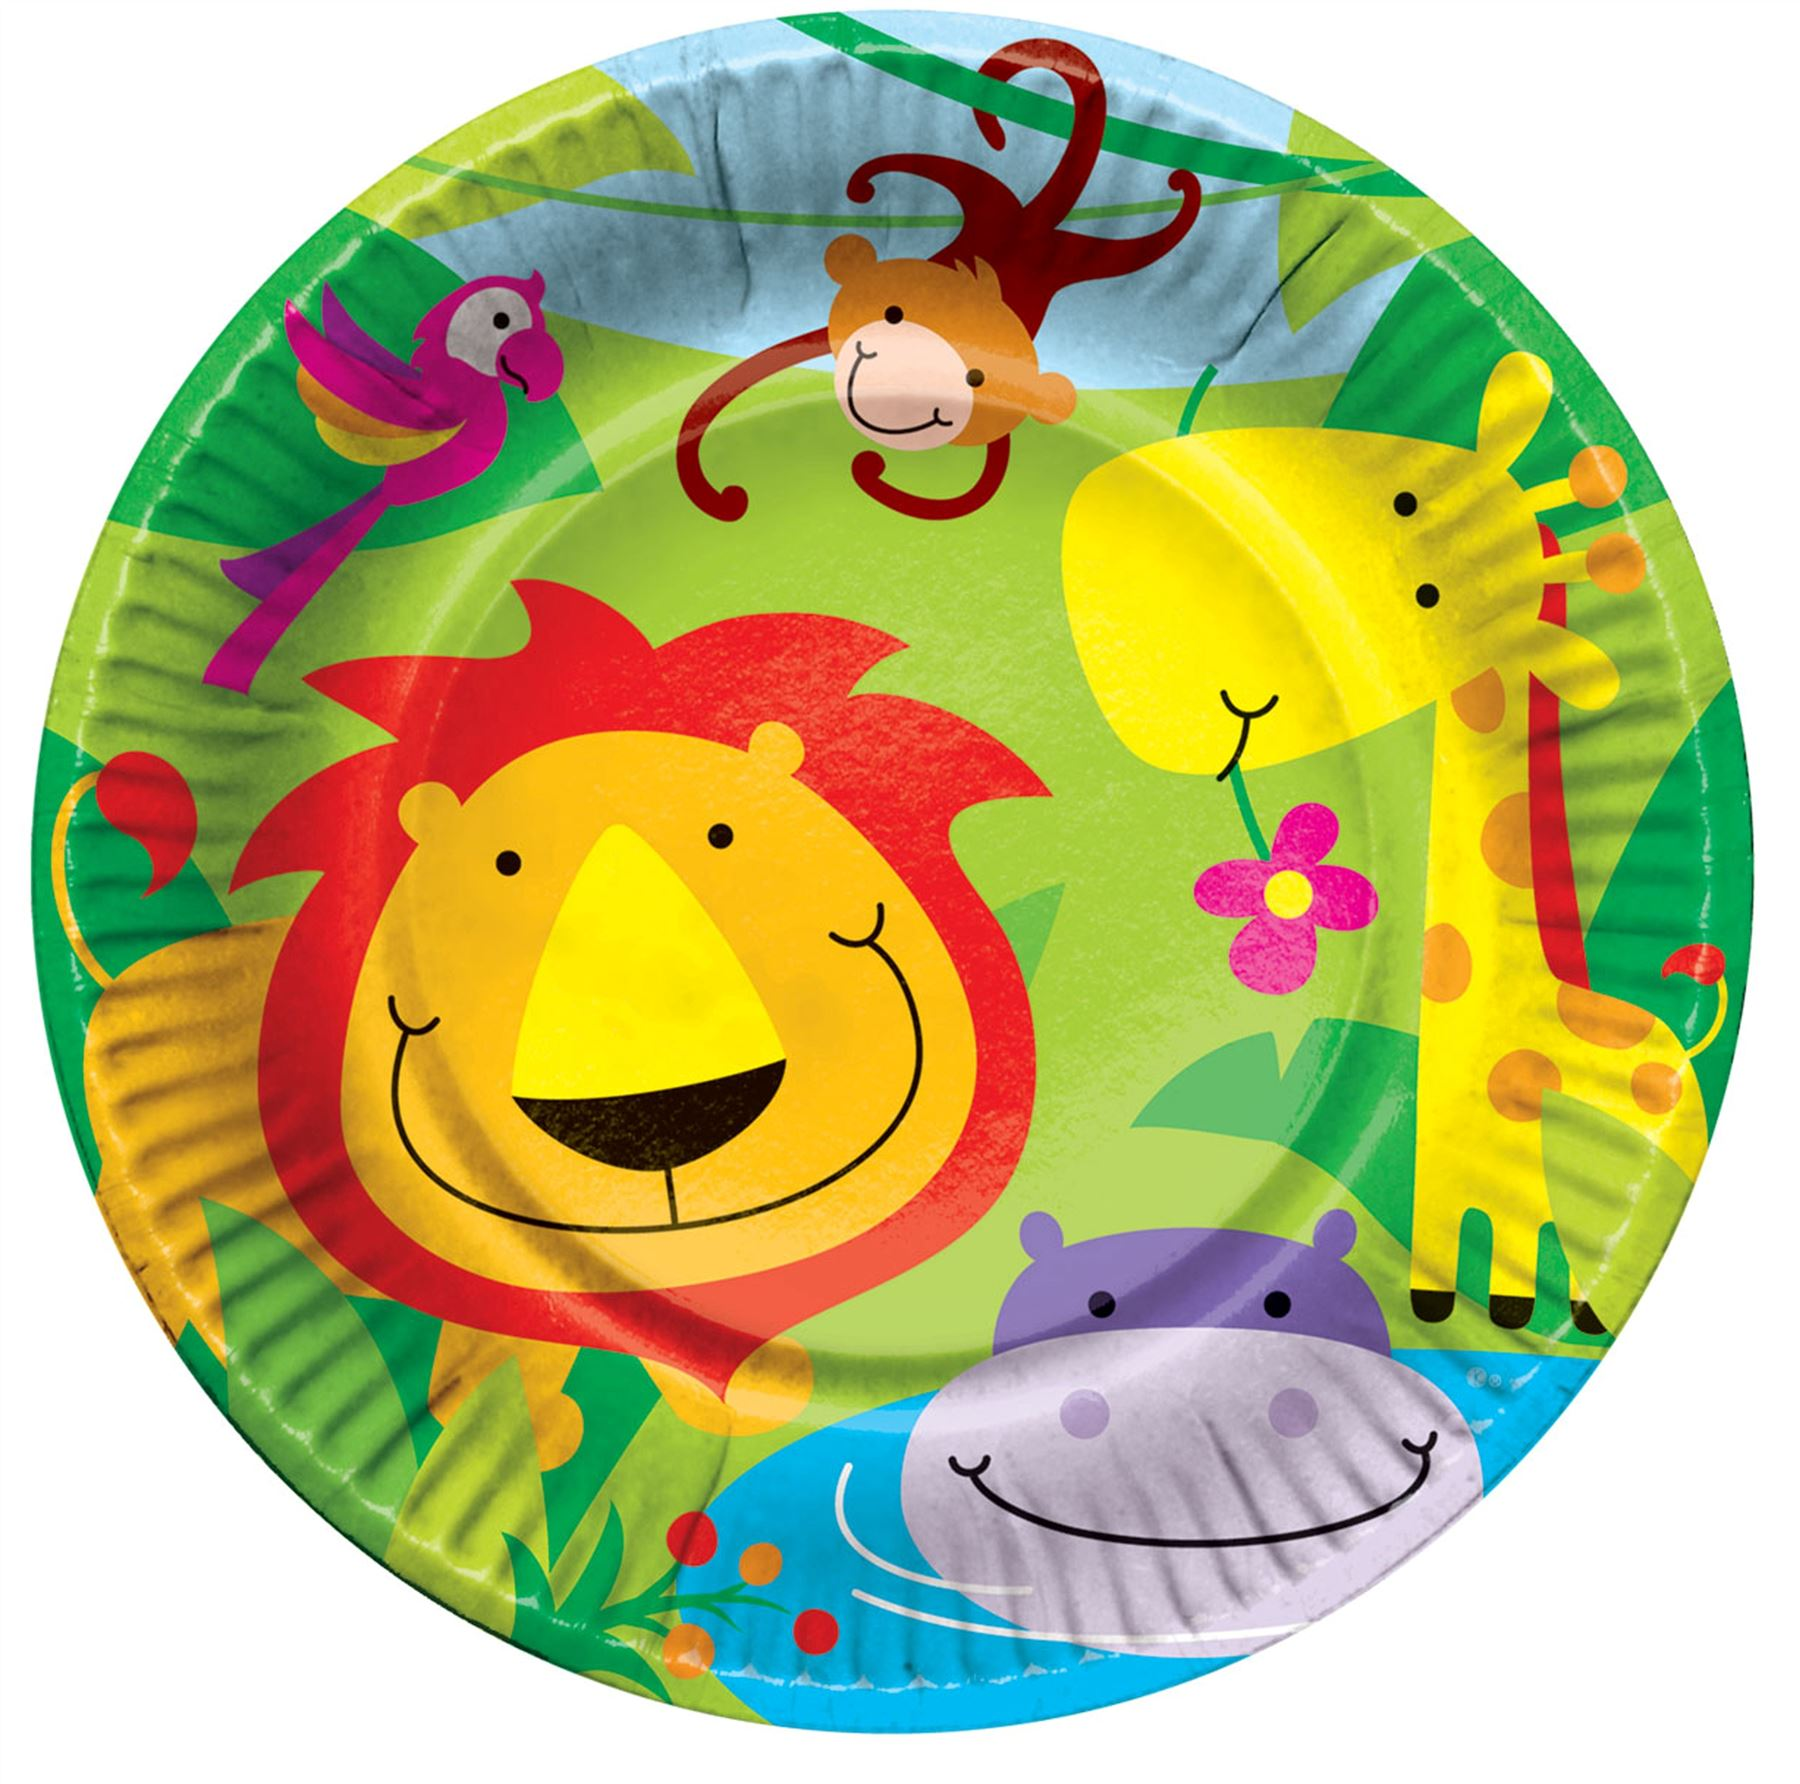 Jungle Theme 3 Party Food Gift Boxes Girls Boy Kids Childrens Birthday Party Zoo